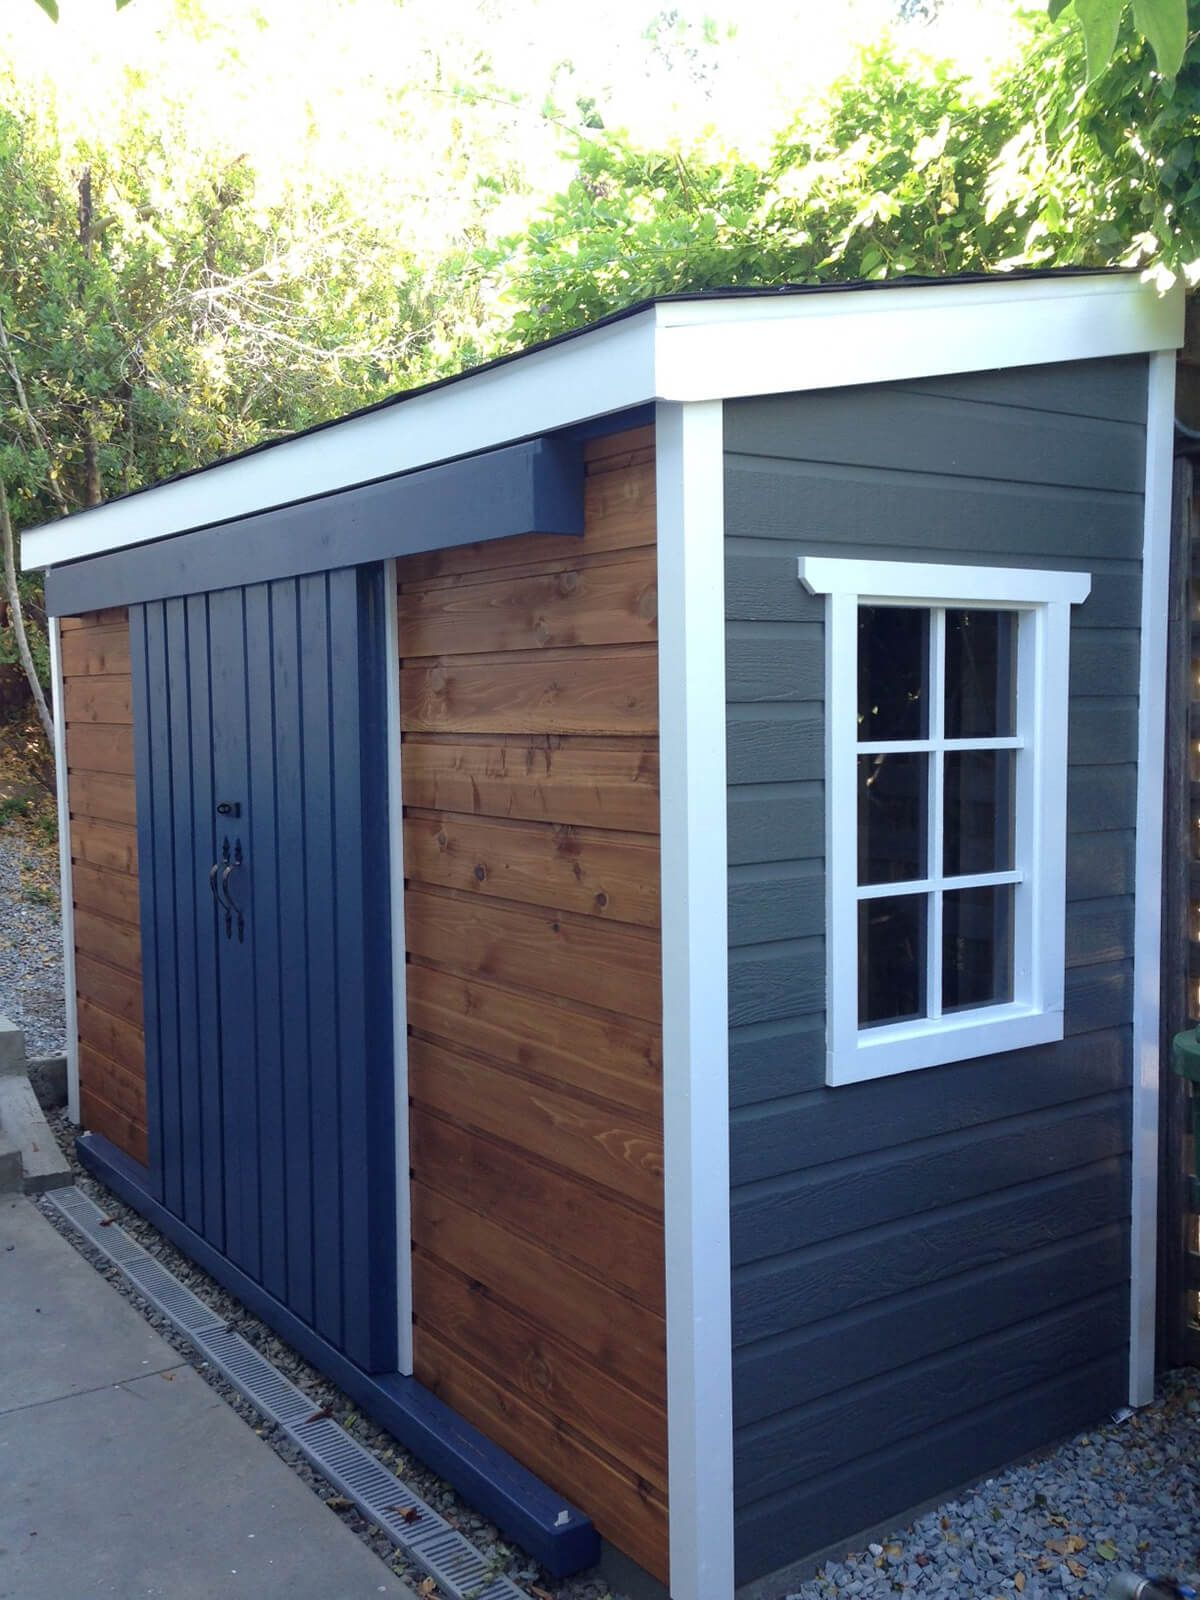 27 Unique Small Storage Shed Ideas For Your Garden Backyard Sheds Shed Design Large Sheds